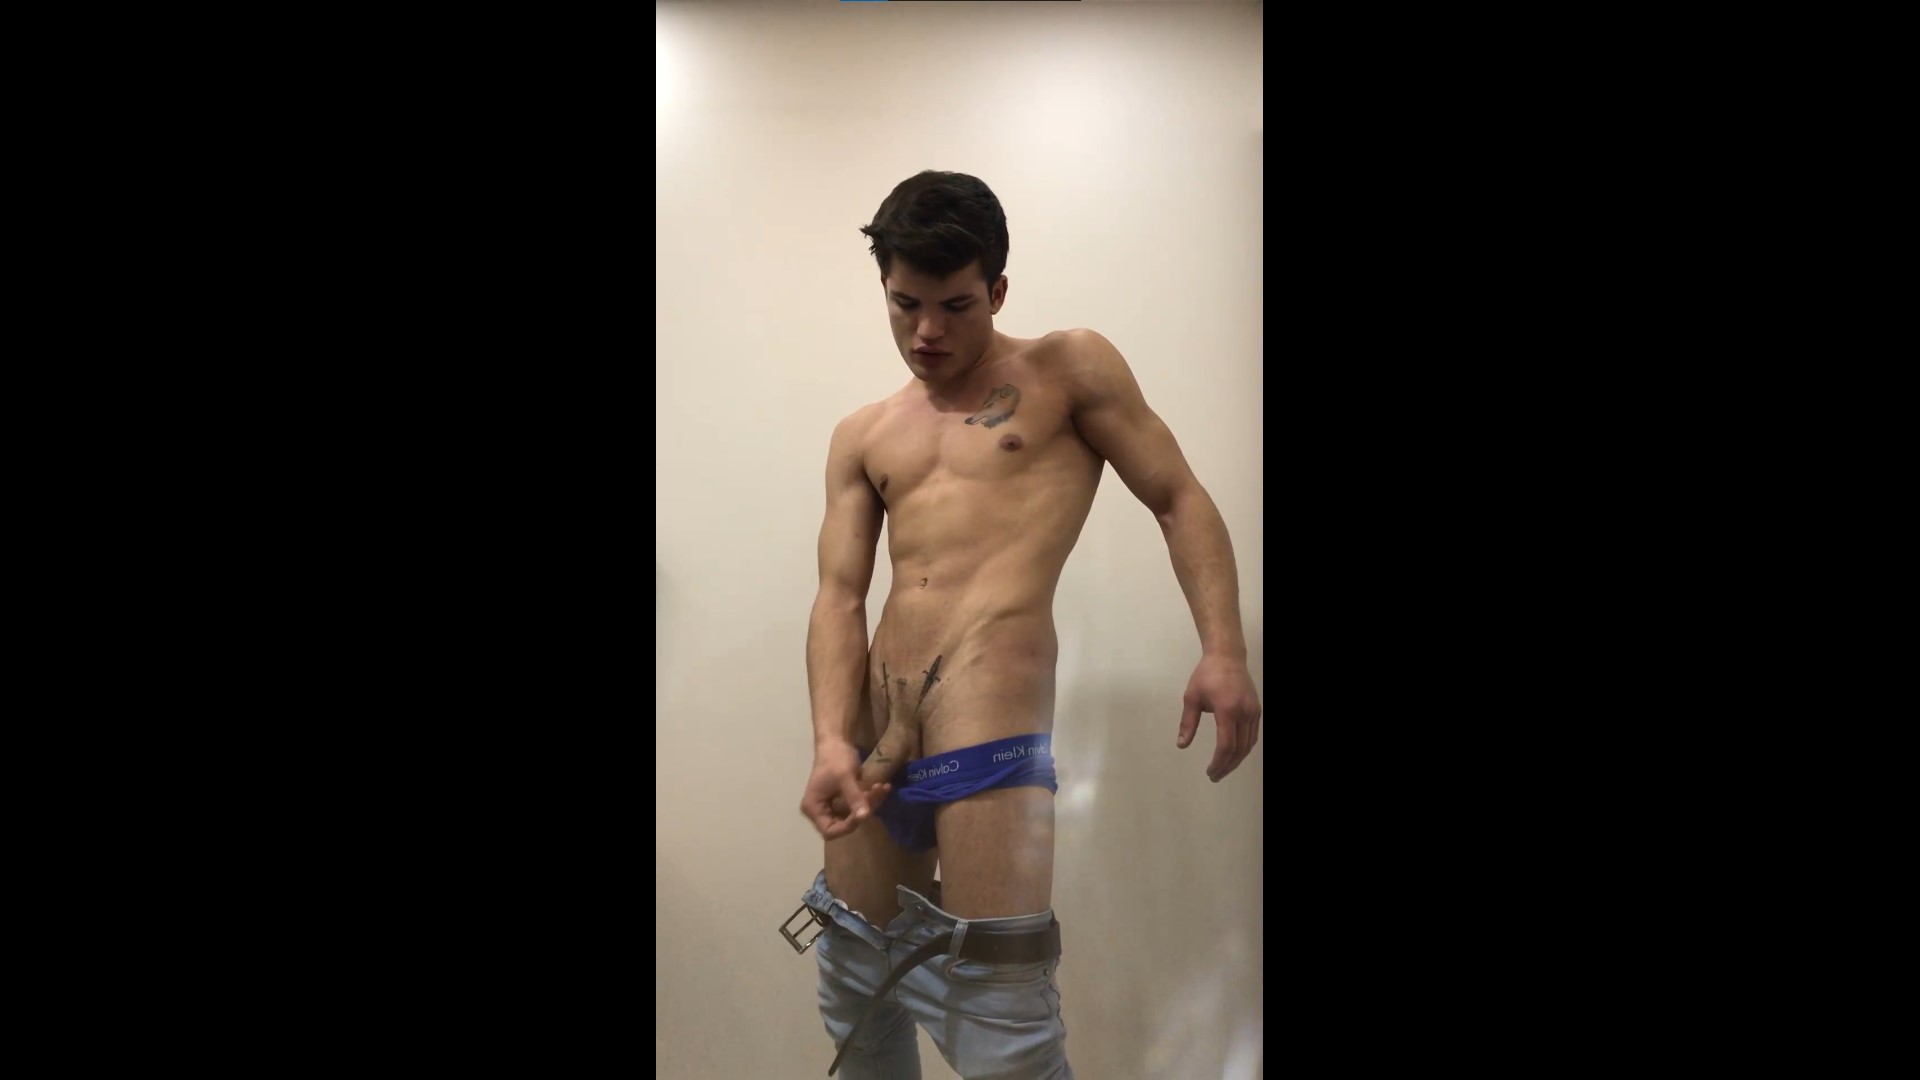 Showing off my body and cock - Kurtdövmeli